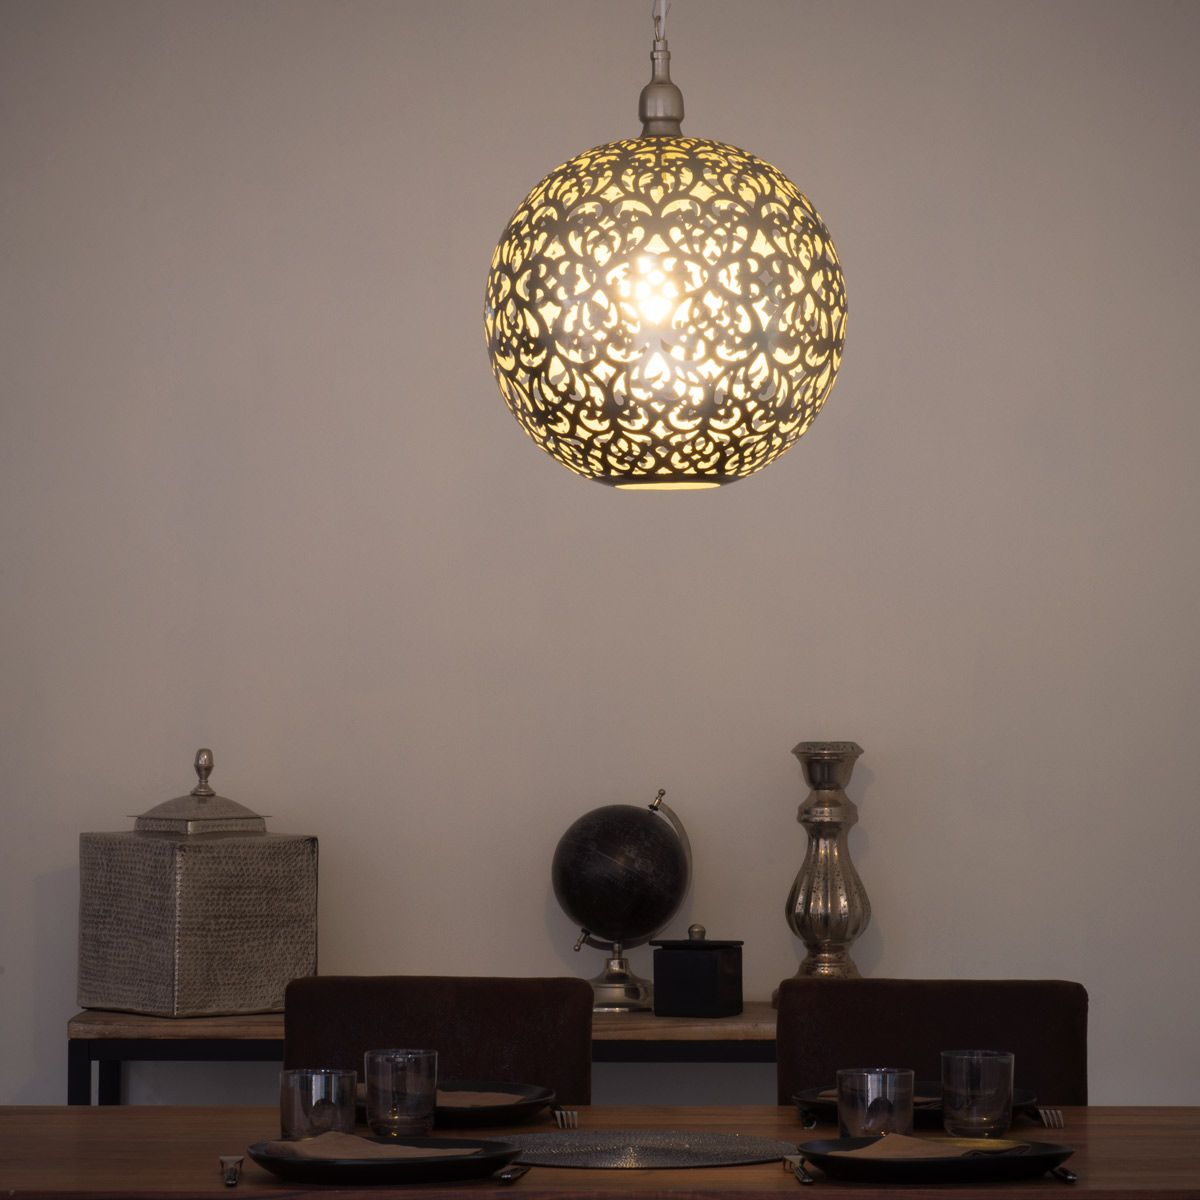 Perforated Metal Pendant (Shade Only) | Ceiling lights ... on Decorative Wall Sconces Non Electric Lights For Closets id=46660